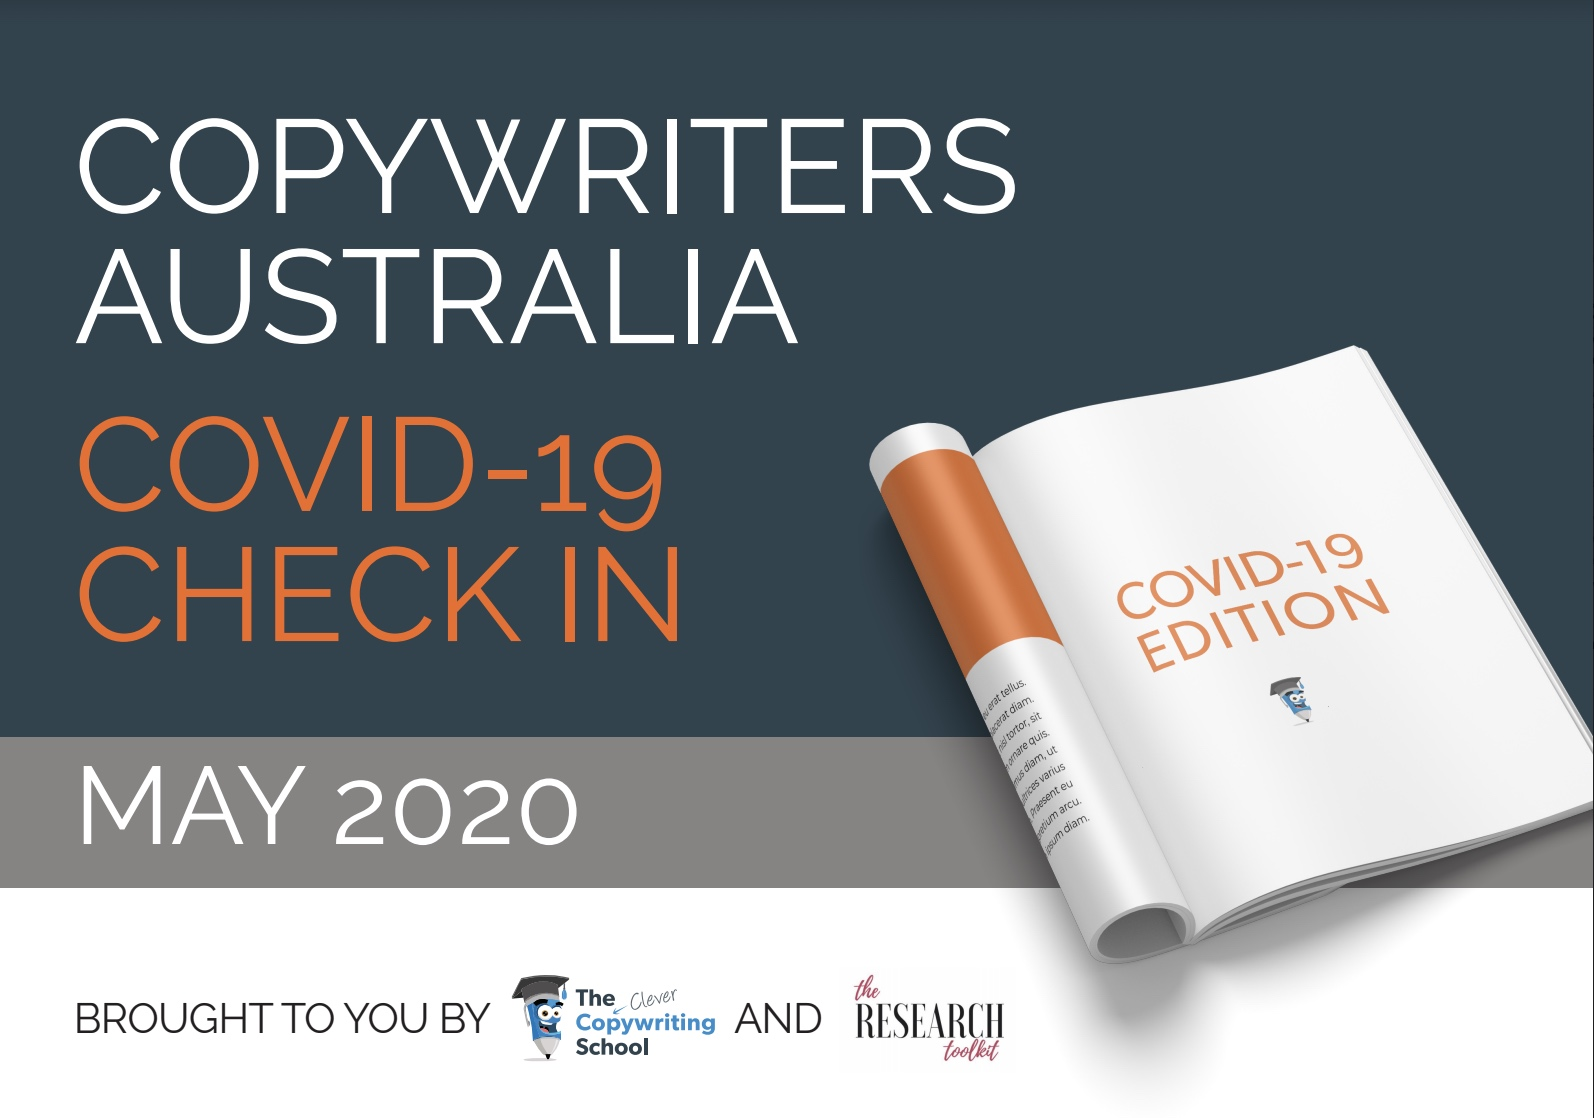 Feeling the impact but adapting to survive: Taking the pulse of copywriters during COVID-19